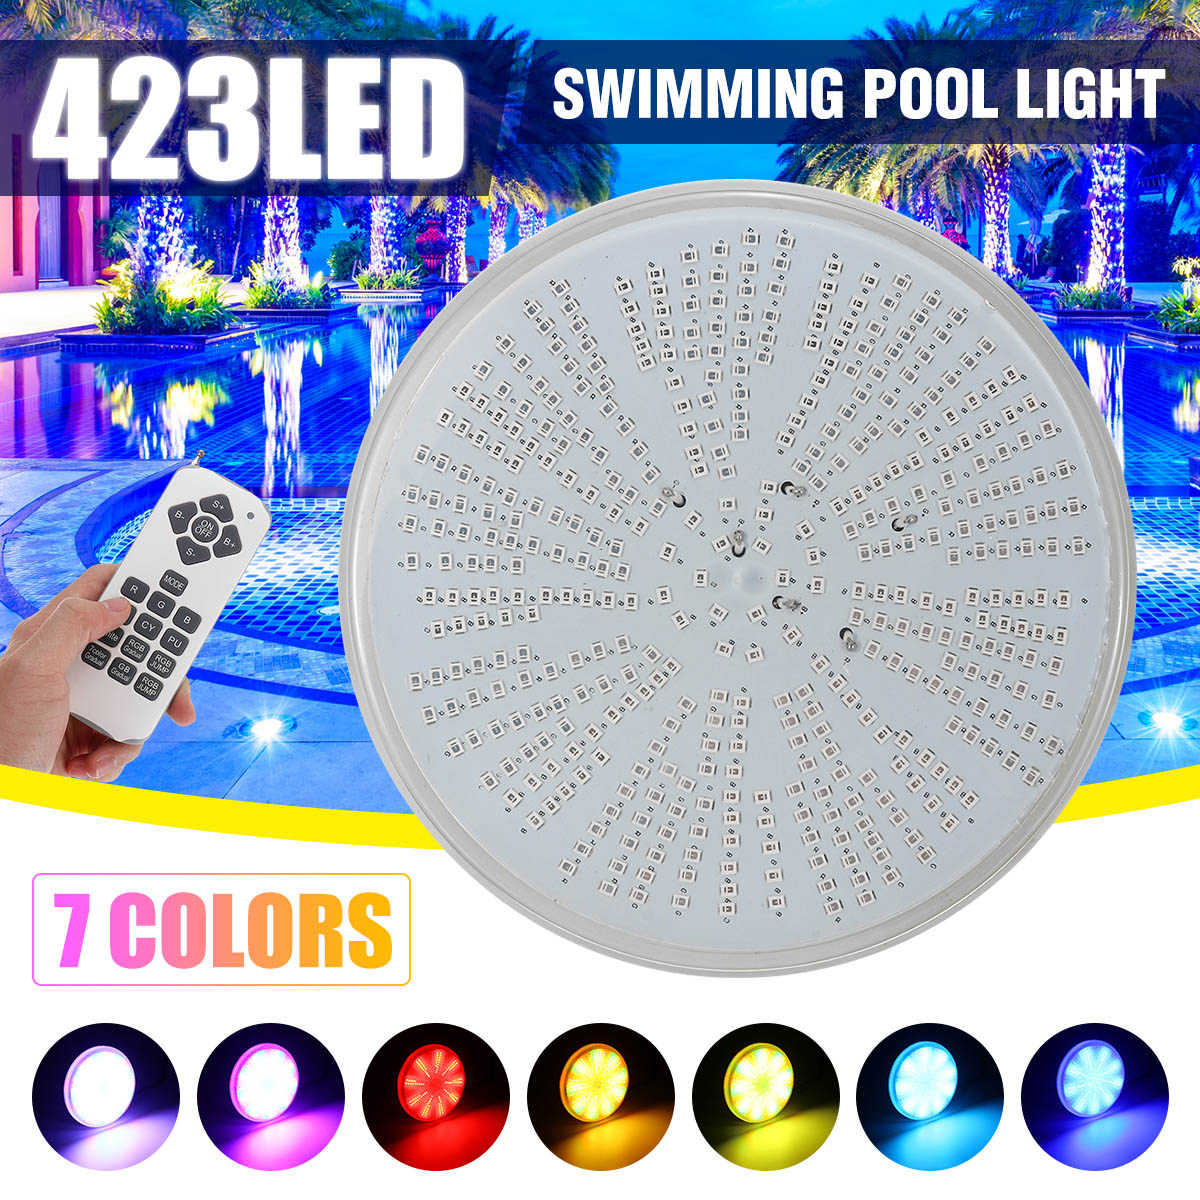 Led Swimming Pool Light 423leds AC/DC12V RGB Resin Replacement PAR56 Lamp Waterproof IP68 Multi Color 2m Wire Underwater Lights